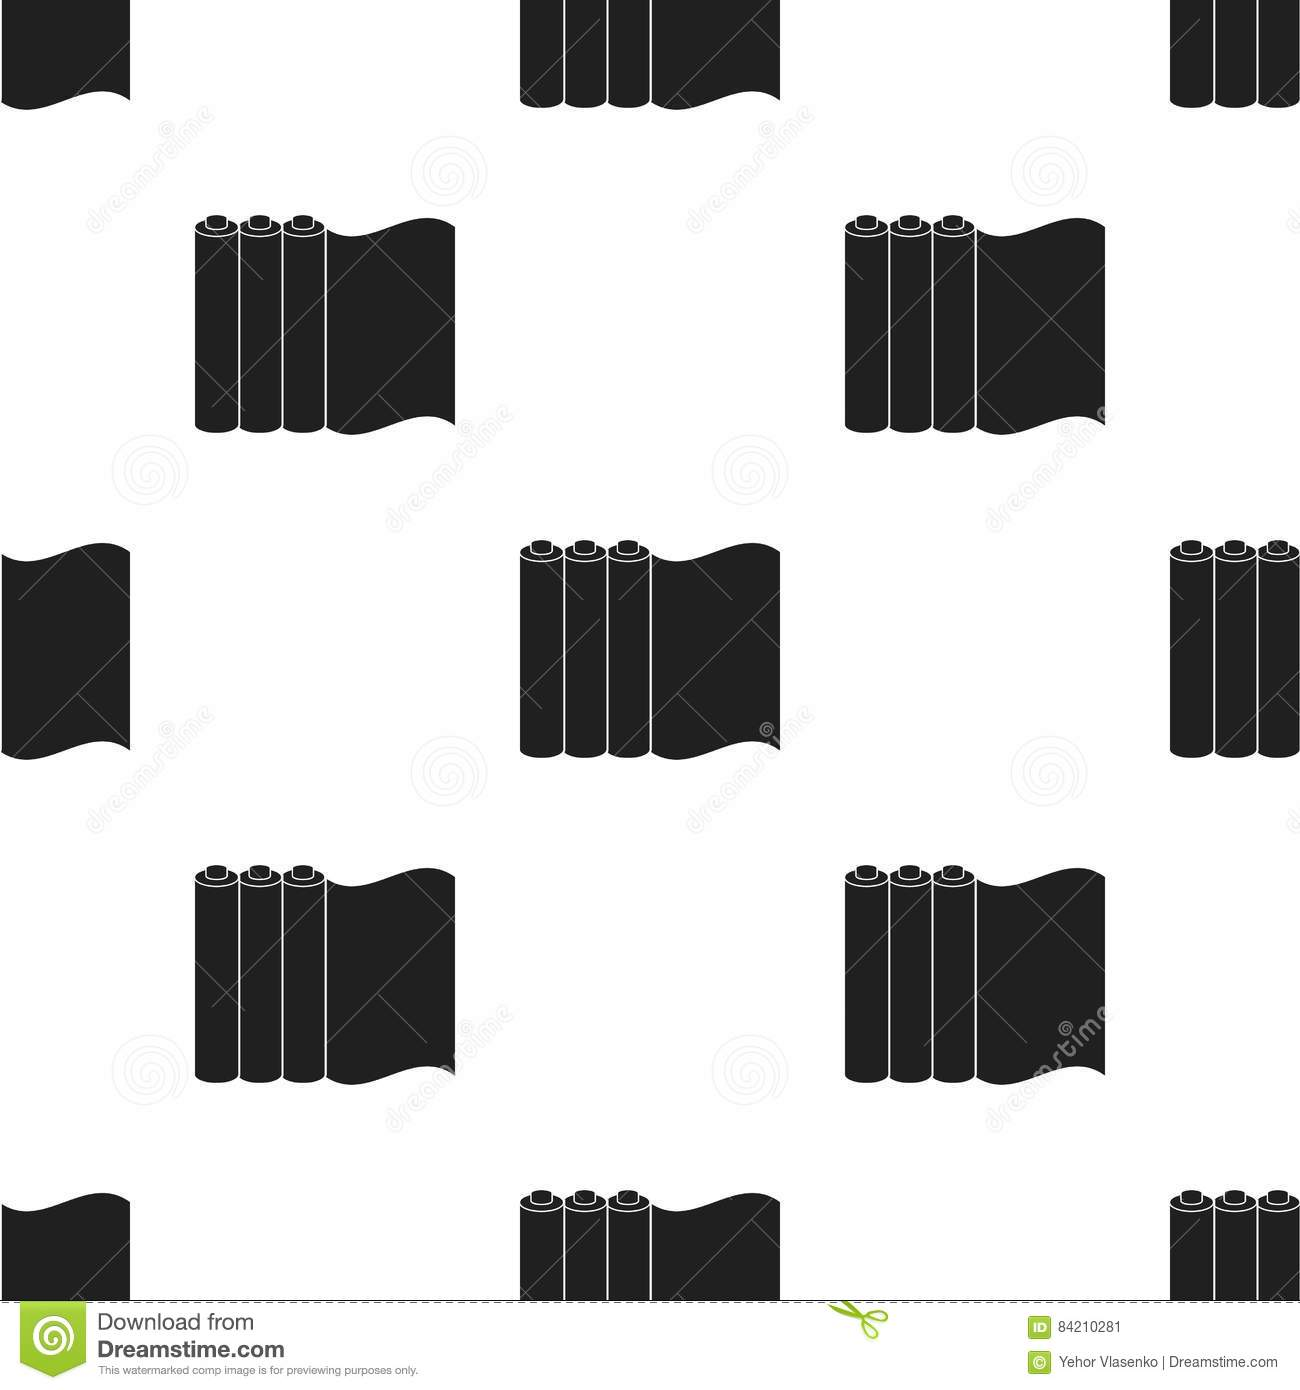 Color printing paper - Color Printing Paper In Black Style Isolated On White Background Typography Pattern Stock Vector Illustration